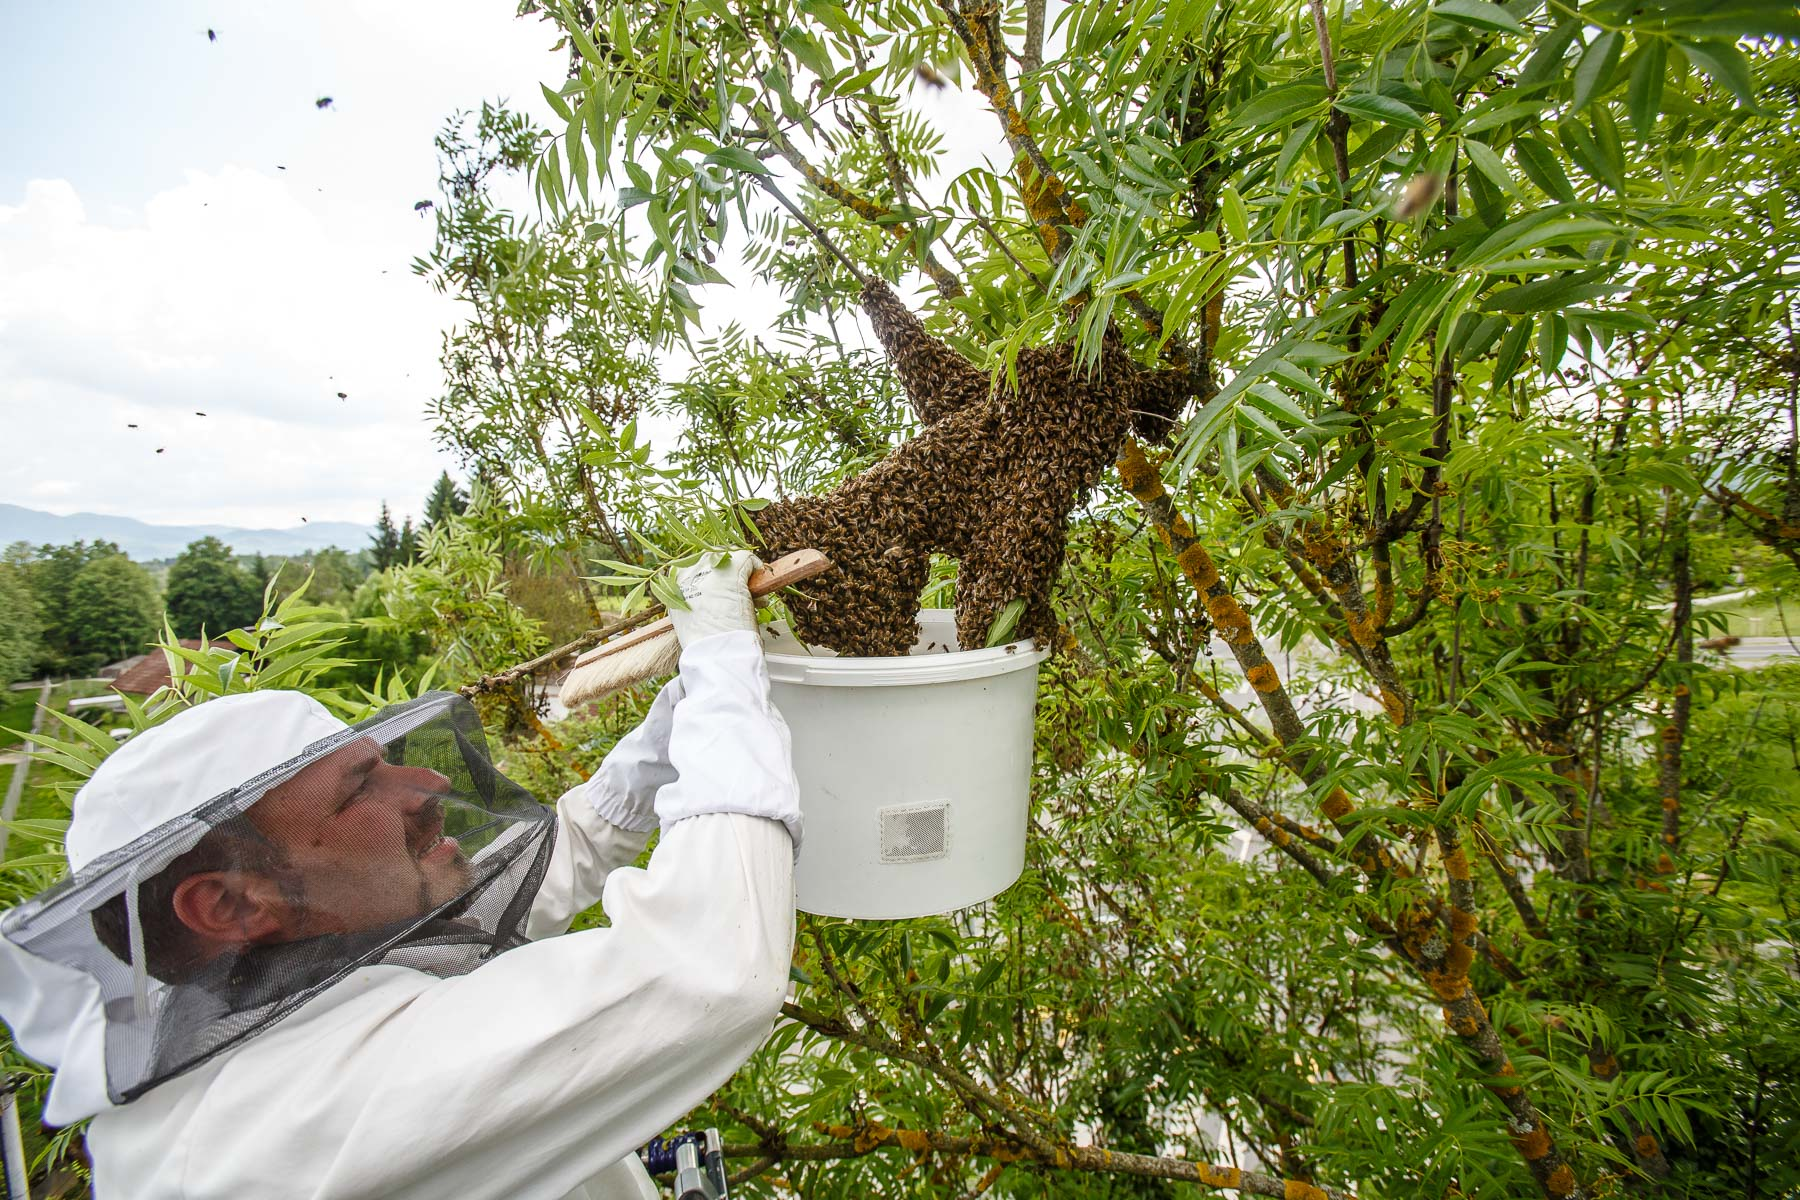 Trušnovec removes a runaway swarm from a treetop by dropping as many bees into a bucket, hoping to trap the queen and make the rest of the bees follow. In picking up swarms he often needs help of local fire departments that provide a ladder.